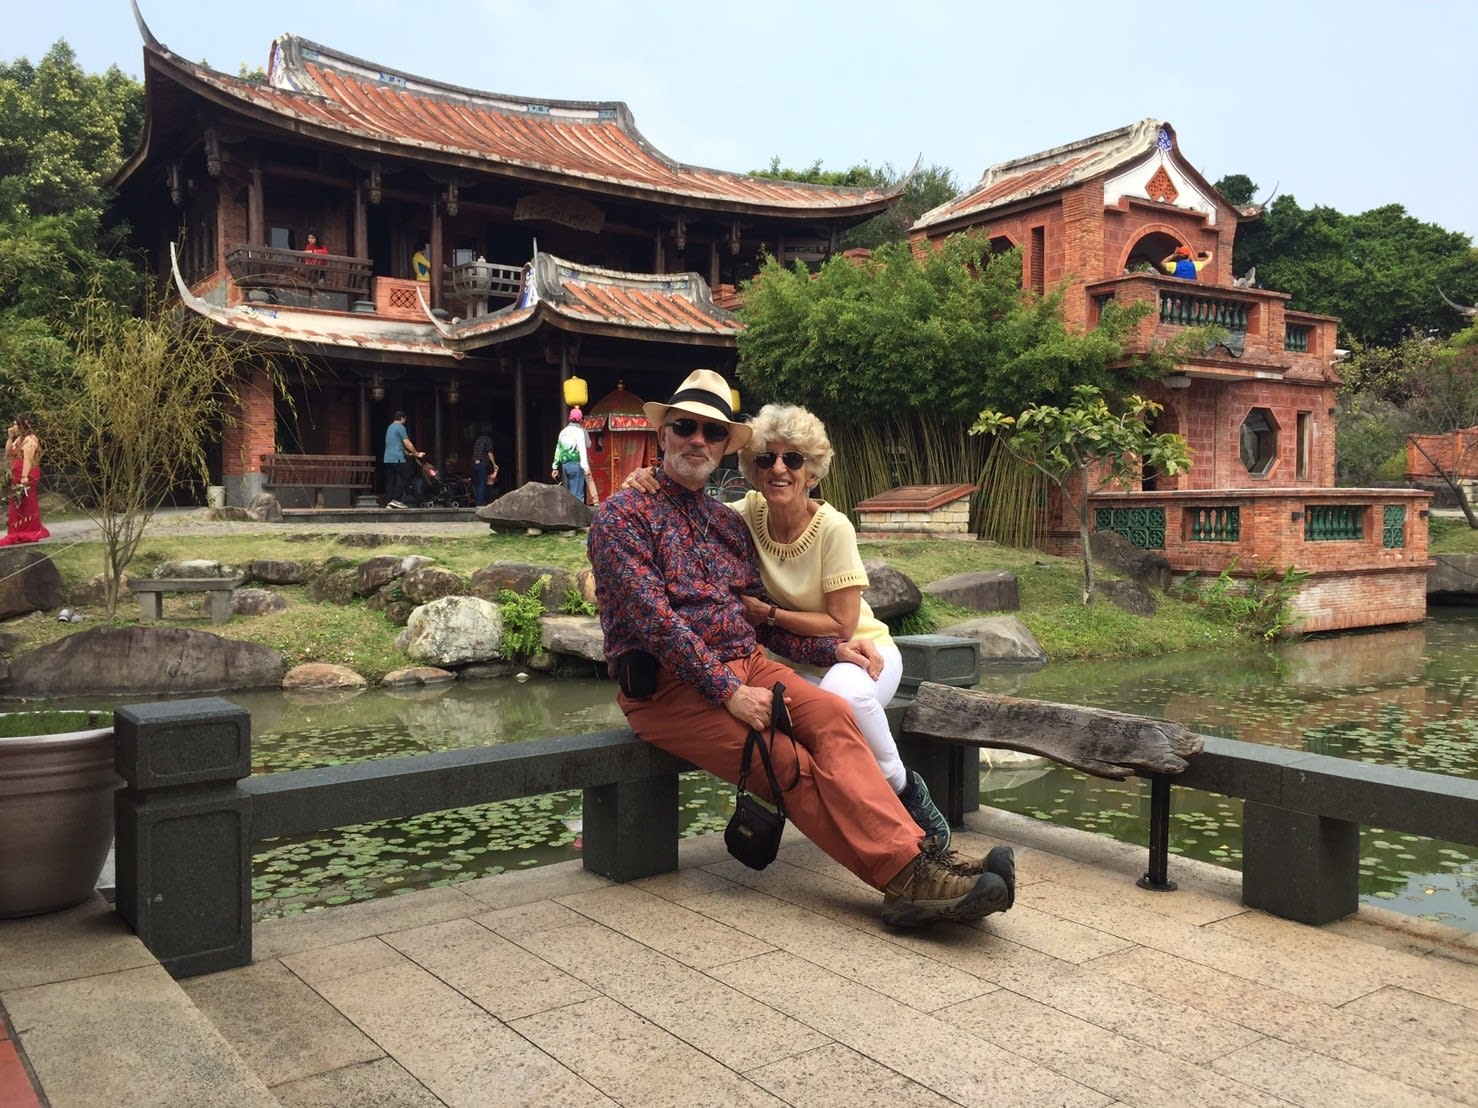 Explore Taiwan's history with traditional Chinese architecture at the Lin An Tai Historical House